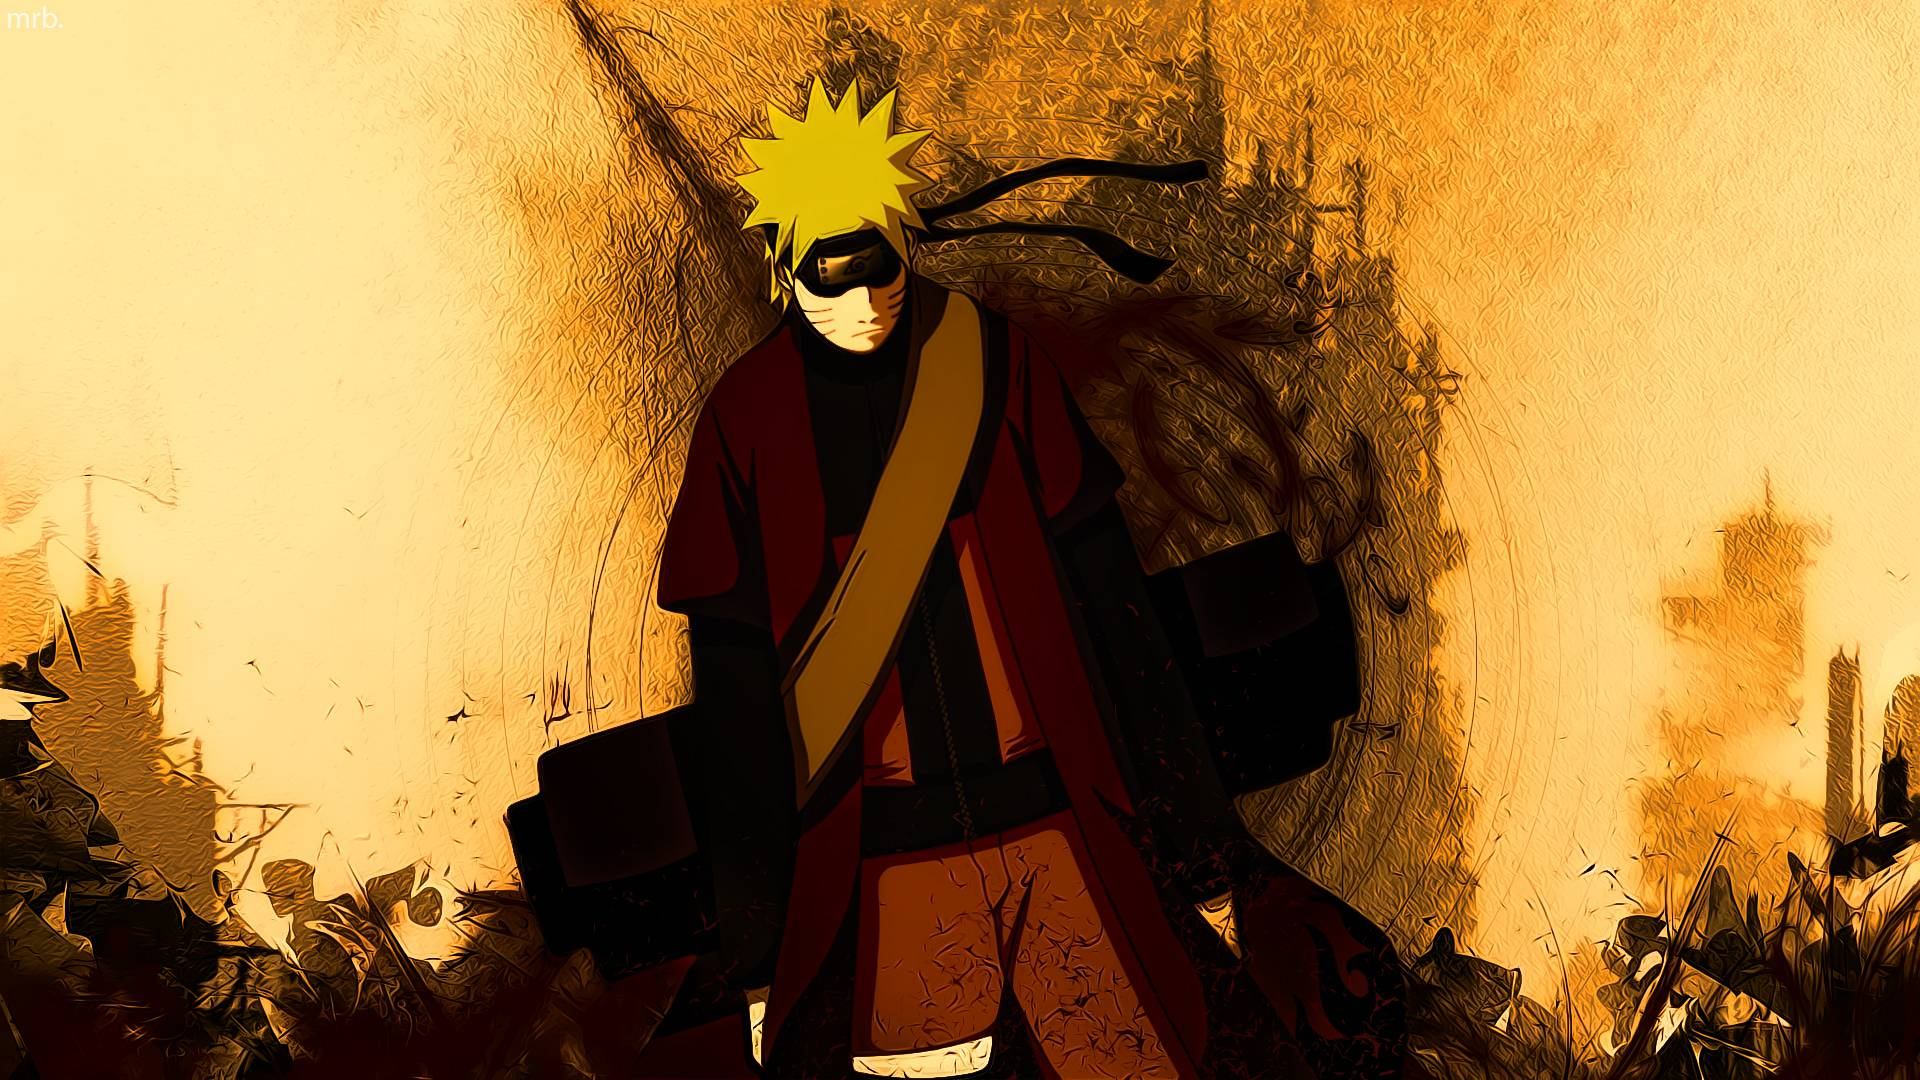 HD Naruto Wallpapers - Wallpaper Cave